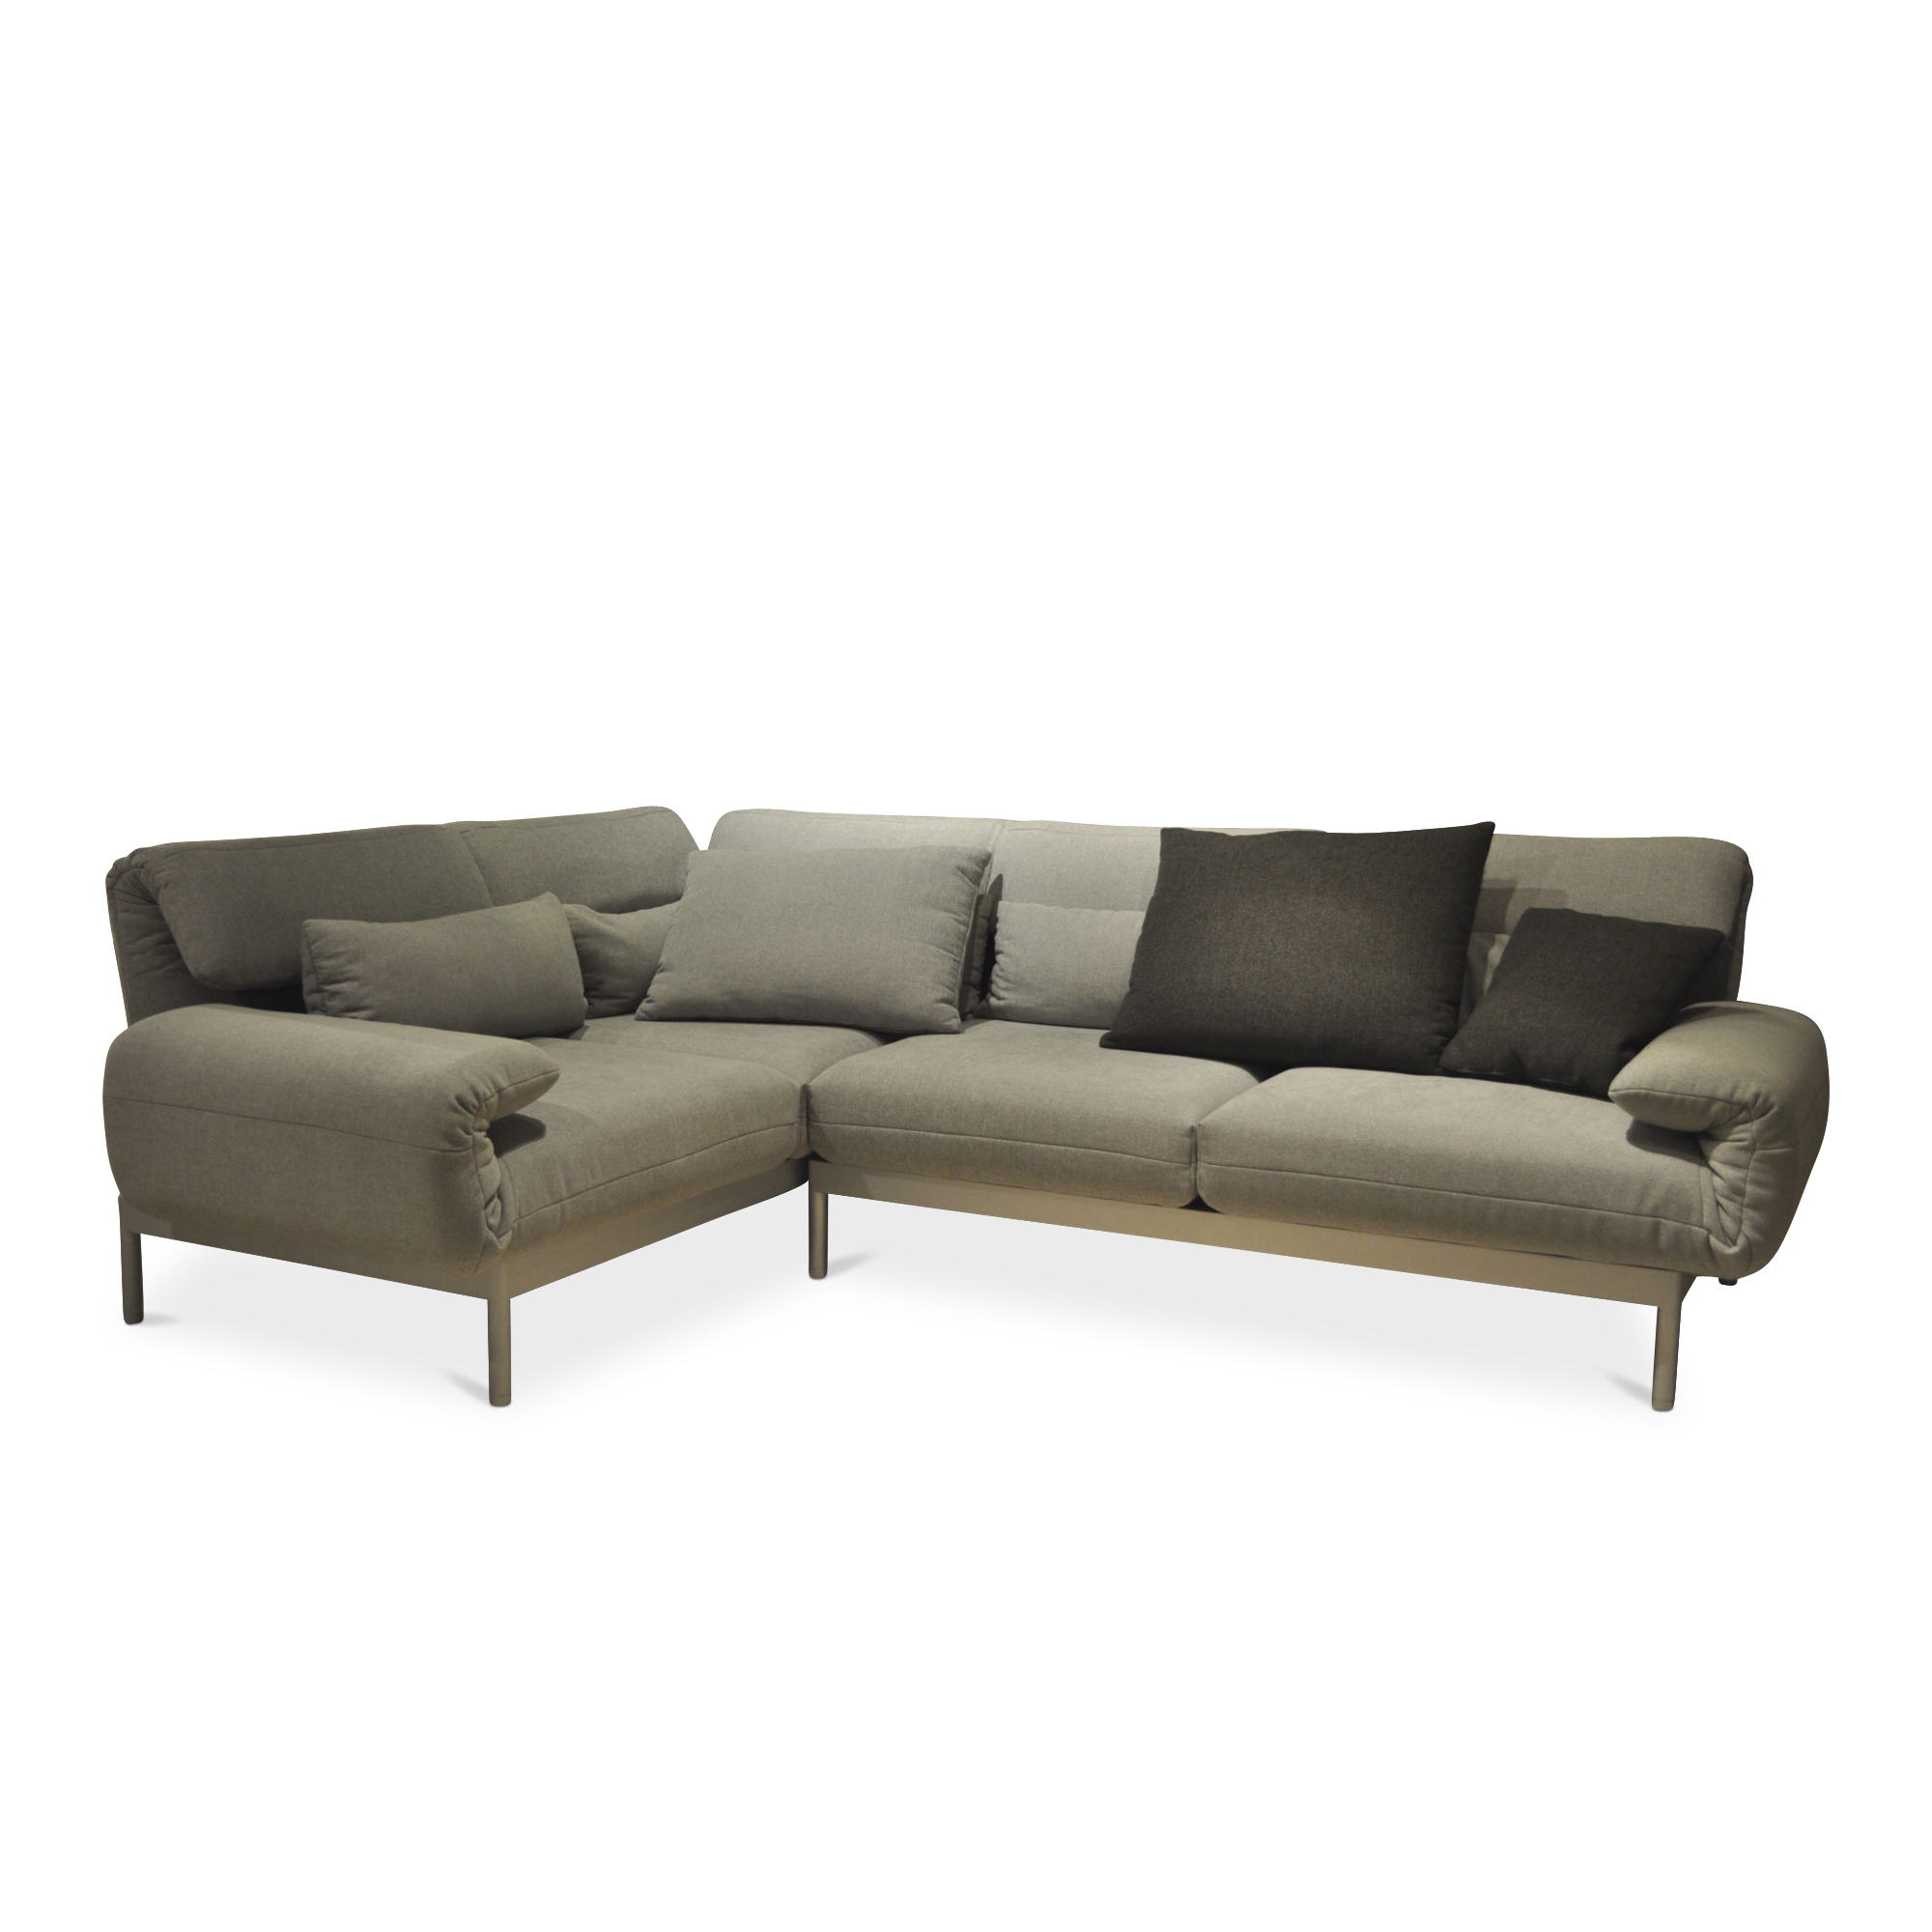 ecksofa plura mit liegefunktion rolf benz sofas. Black Bedroom Furniture Sets. Home Design Ideas